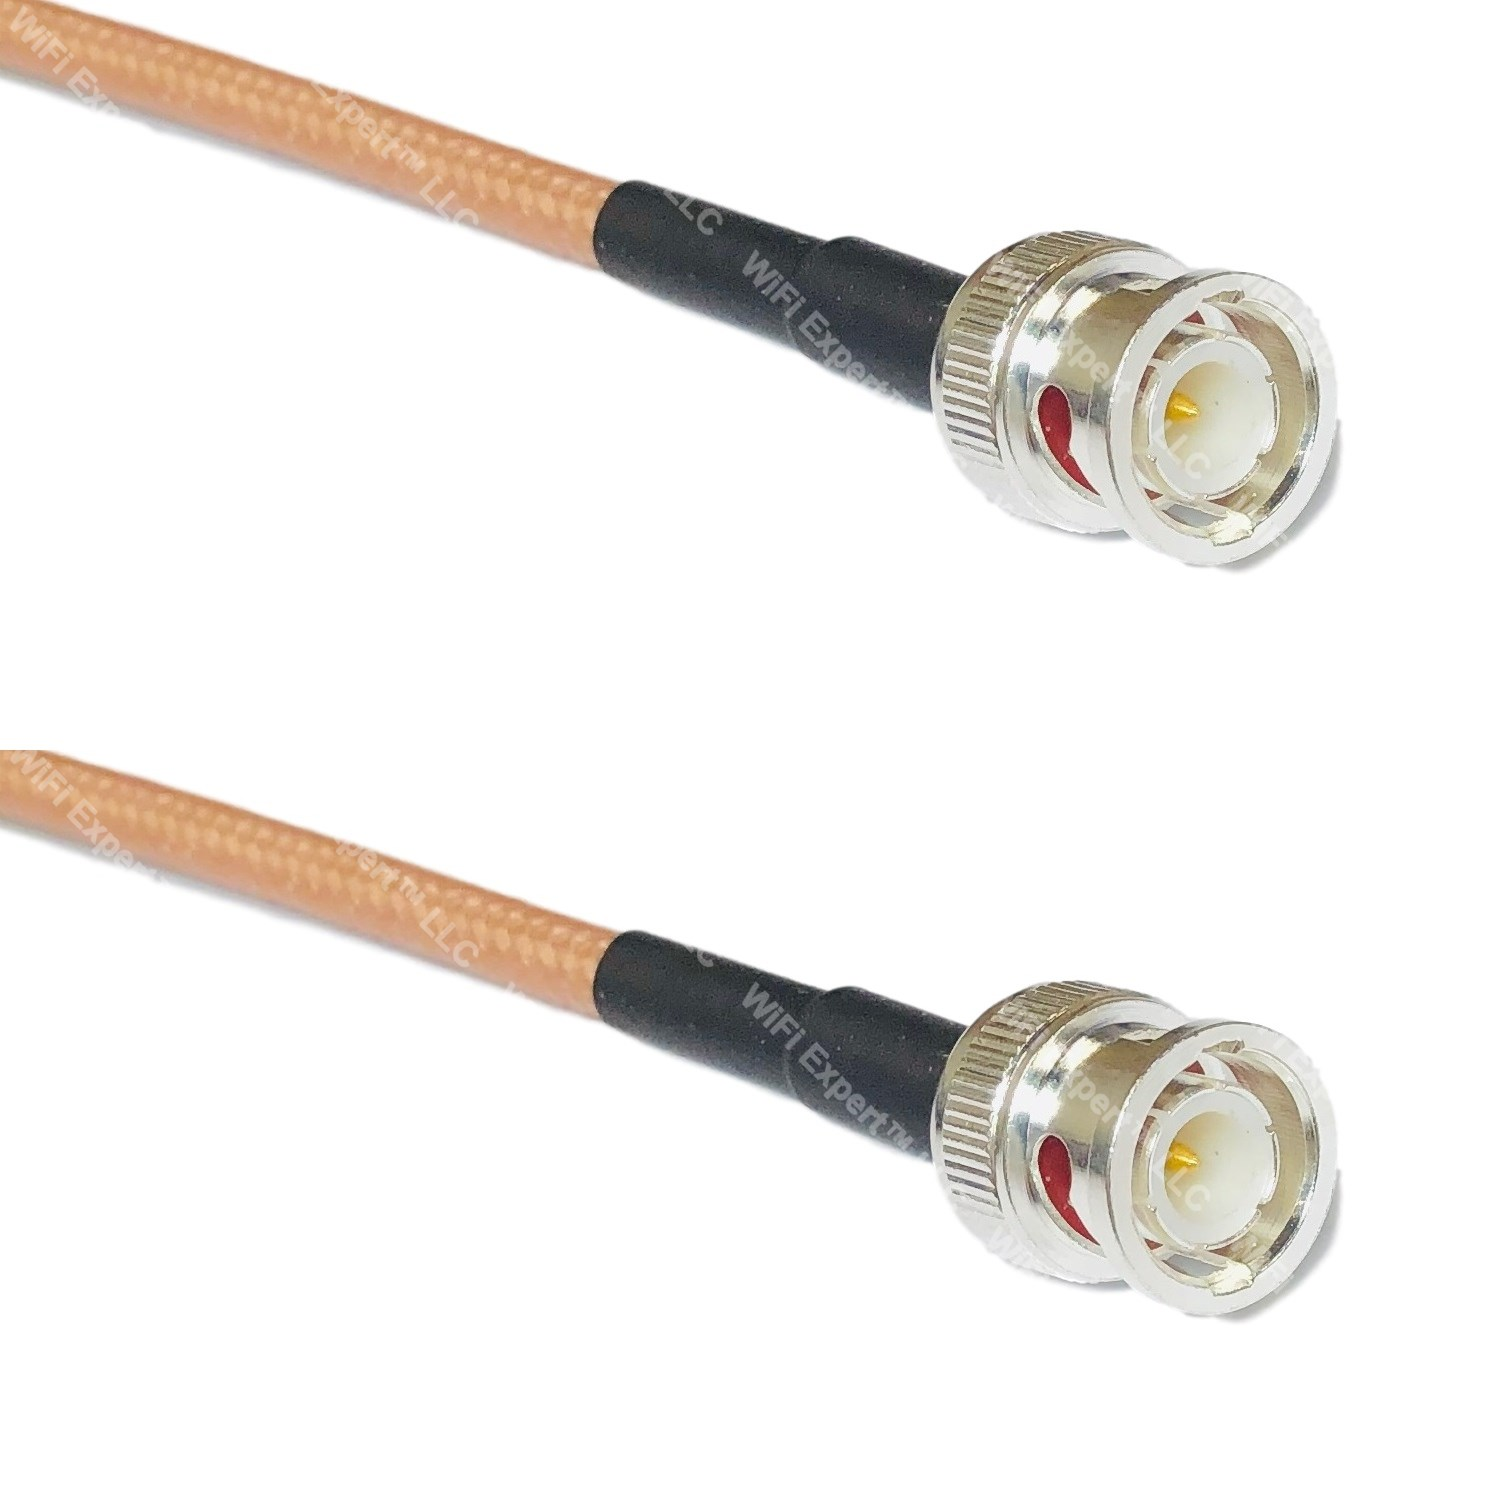 RG142 Silver PL259 UHF Male to BNC MALE ANGLE Coax RF Cable USA Lot